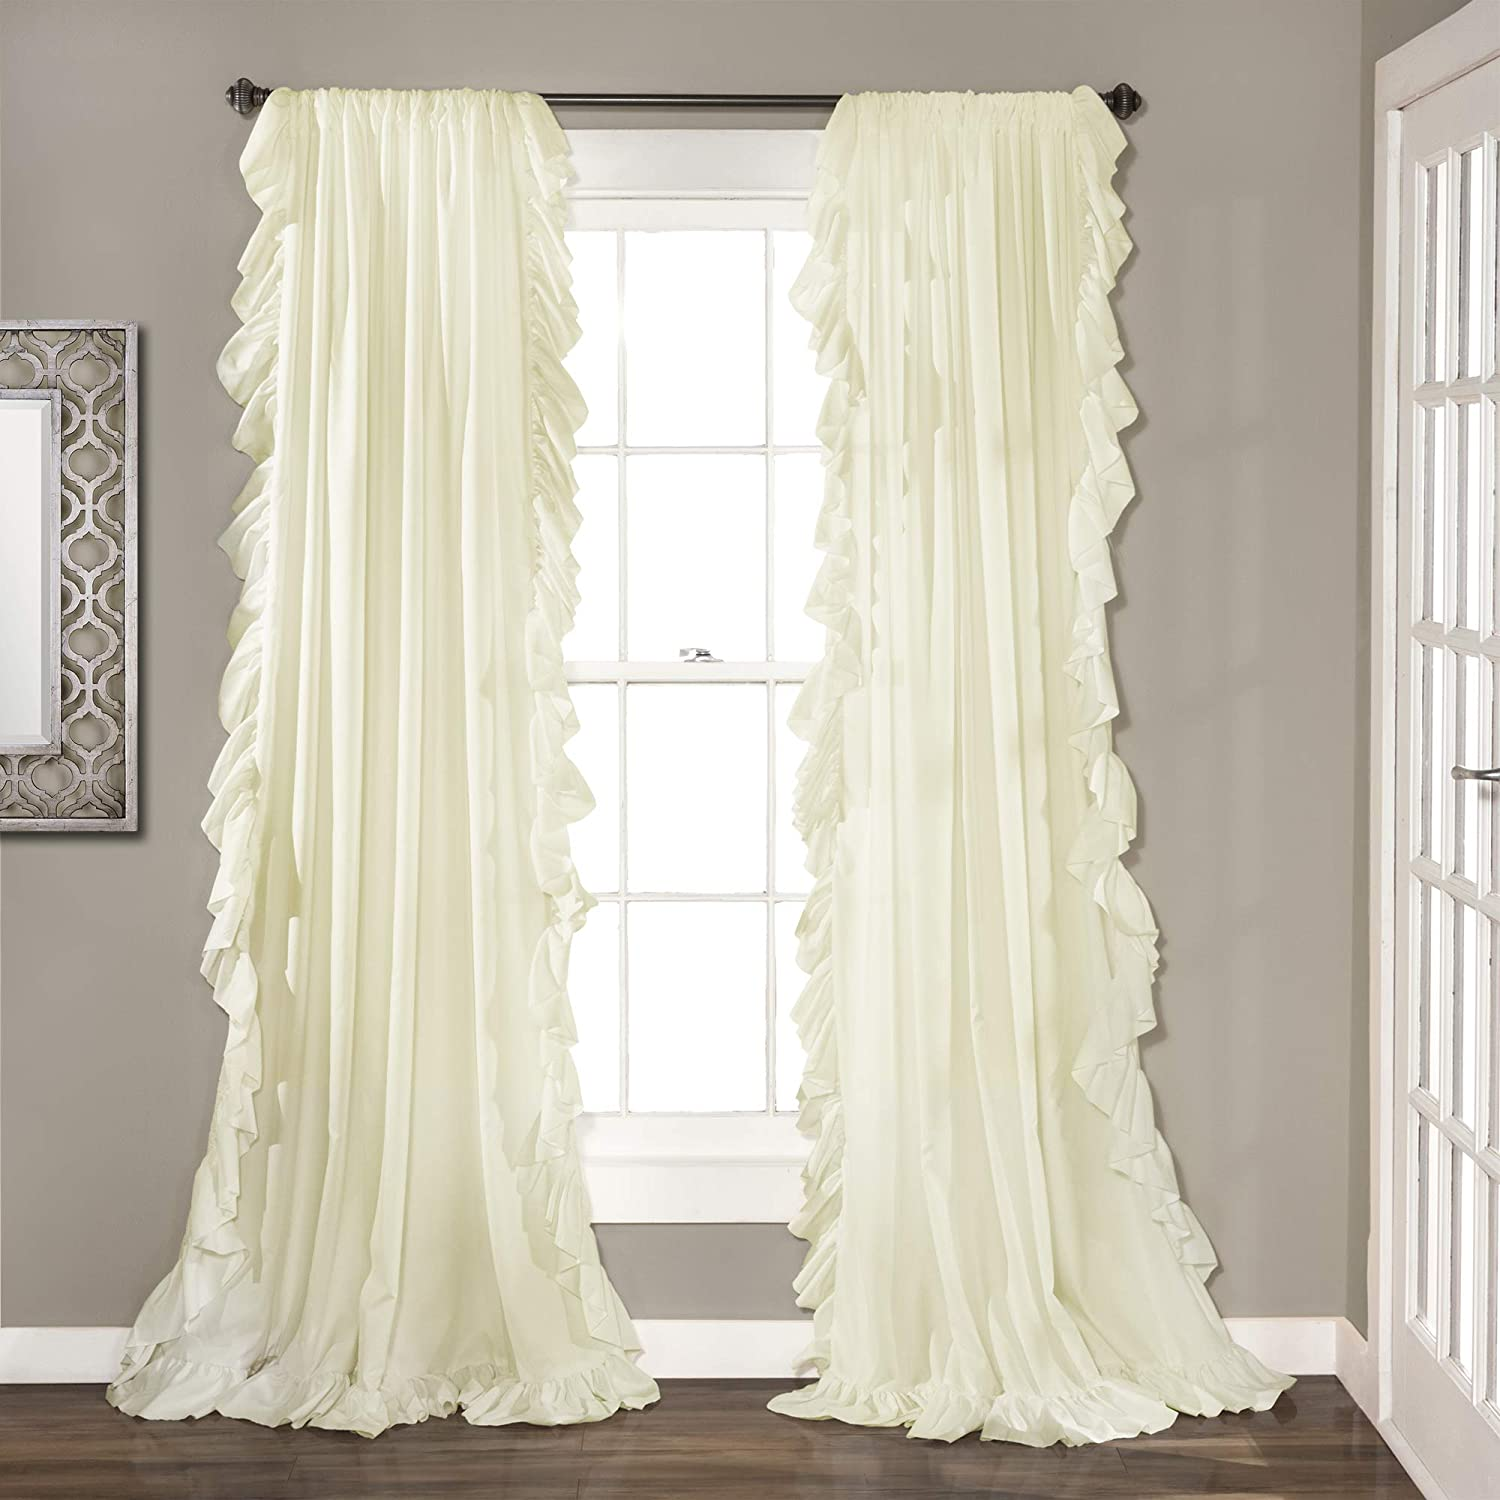 "Lush Decor Reyna Ivory Window Panel Curtain Set for Living, Dining Room, Bedroom (Pair), 84"" x 54"","